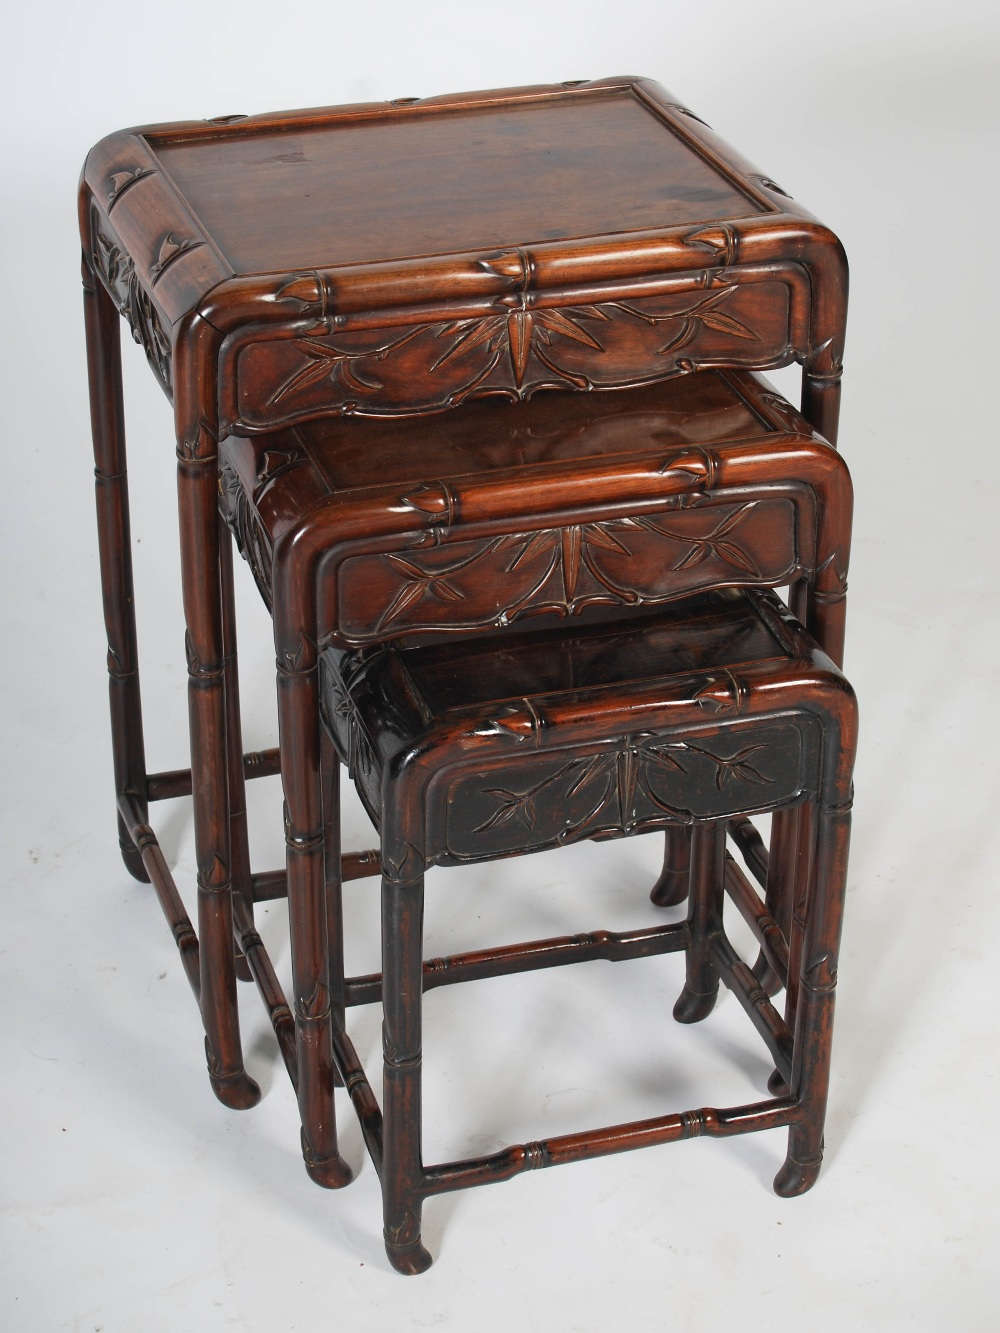 Lot 50 - A nest of three Chinese dark wood occasional tables, Qing Dynasty, the rectangular panelled tops